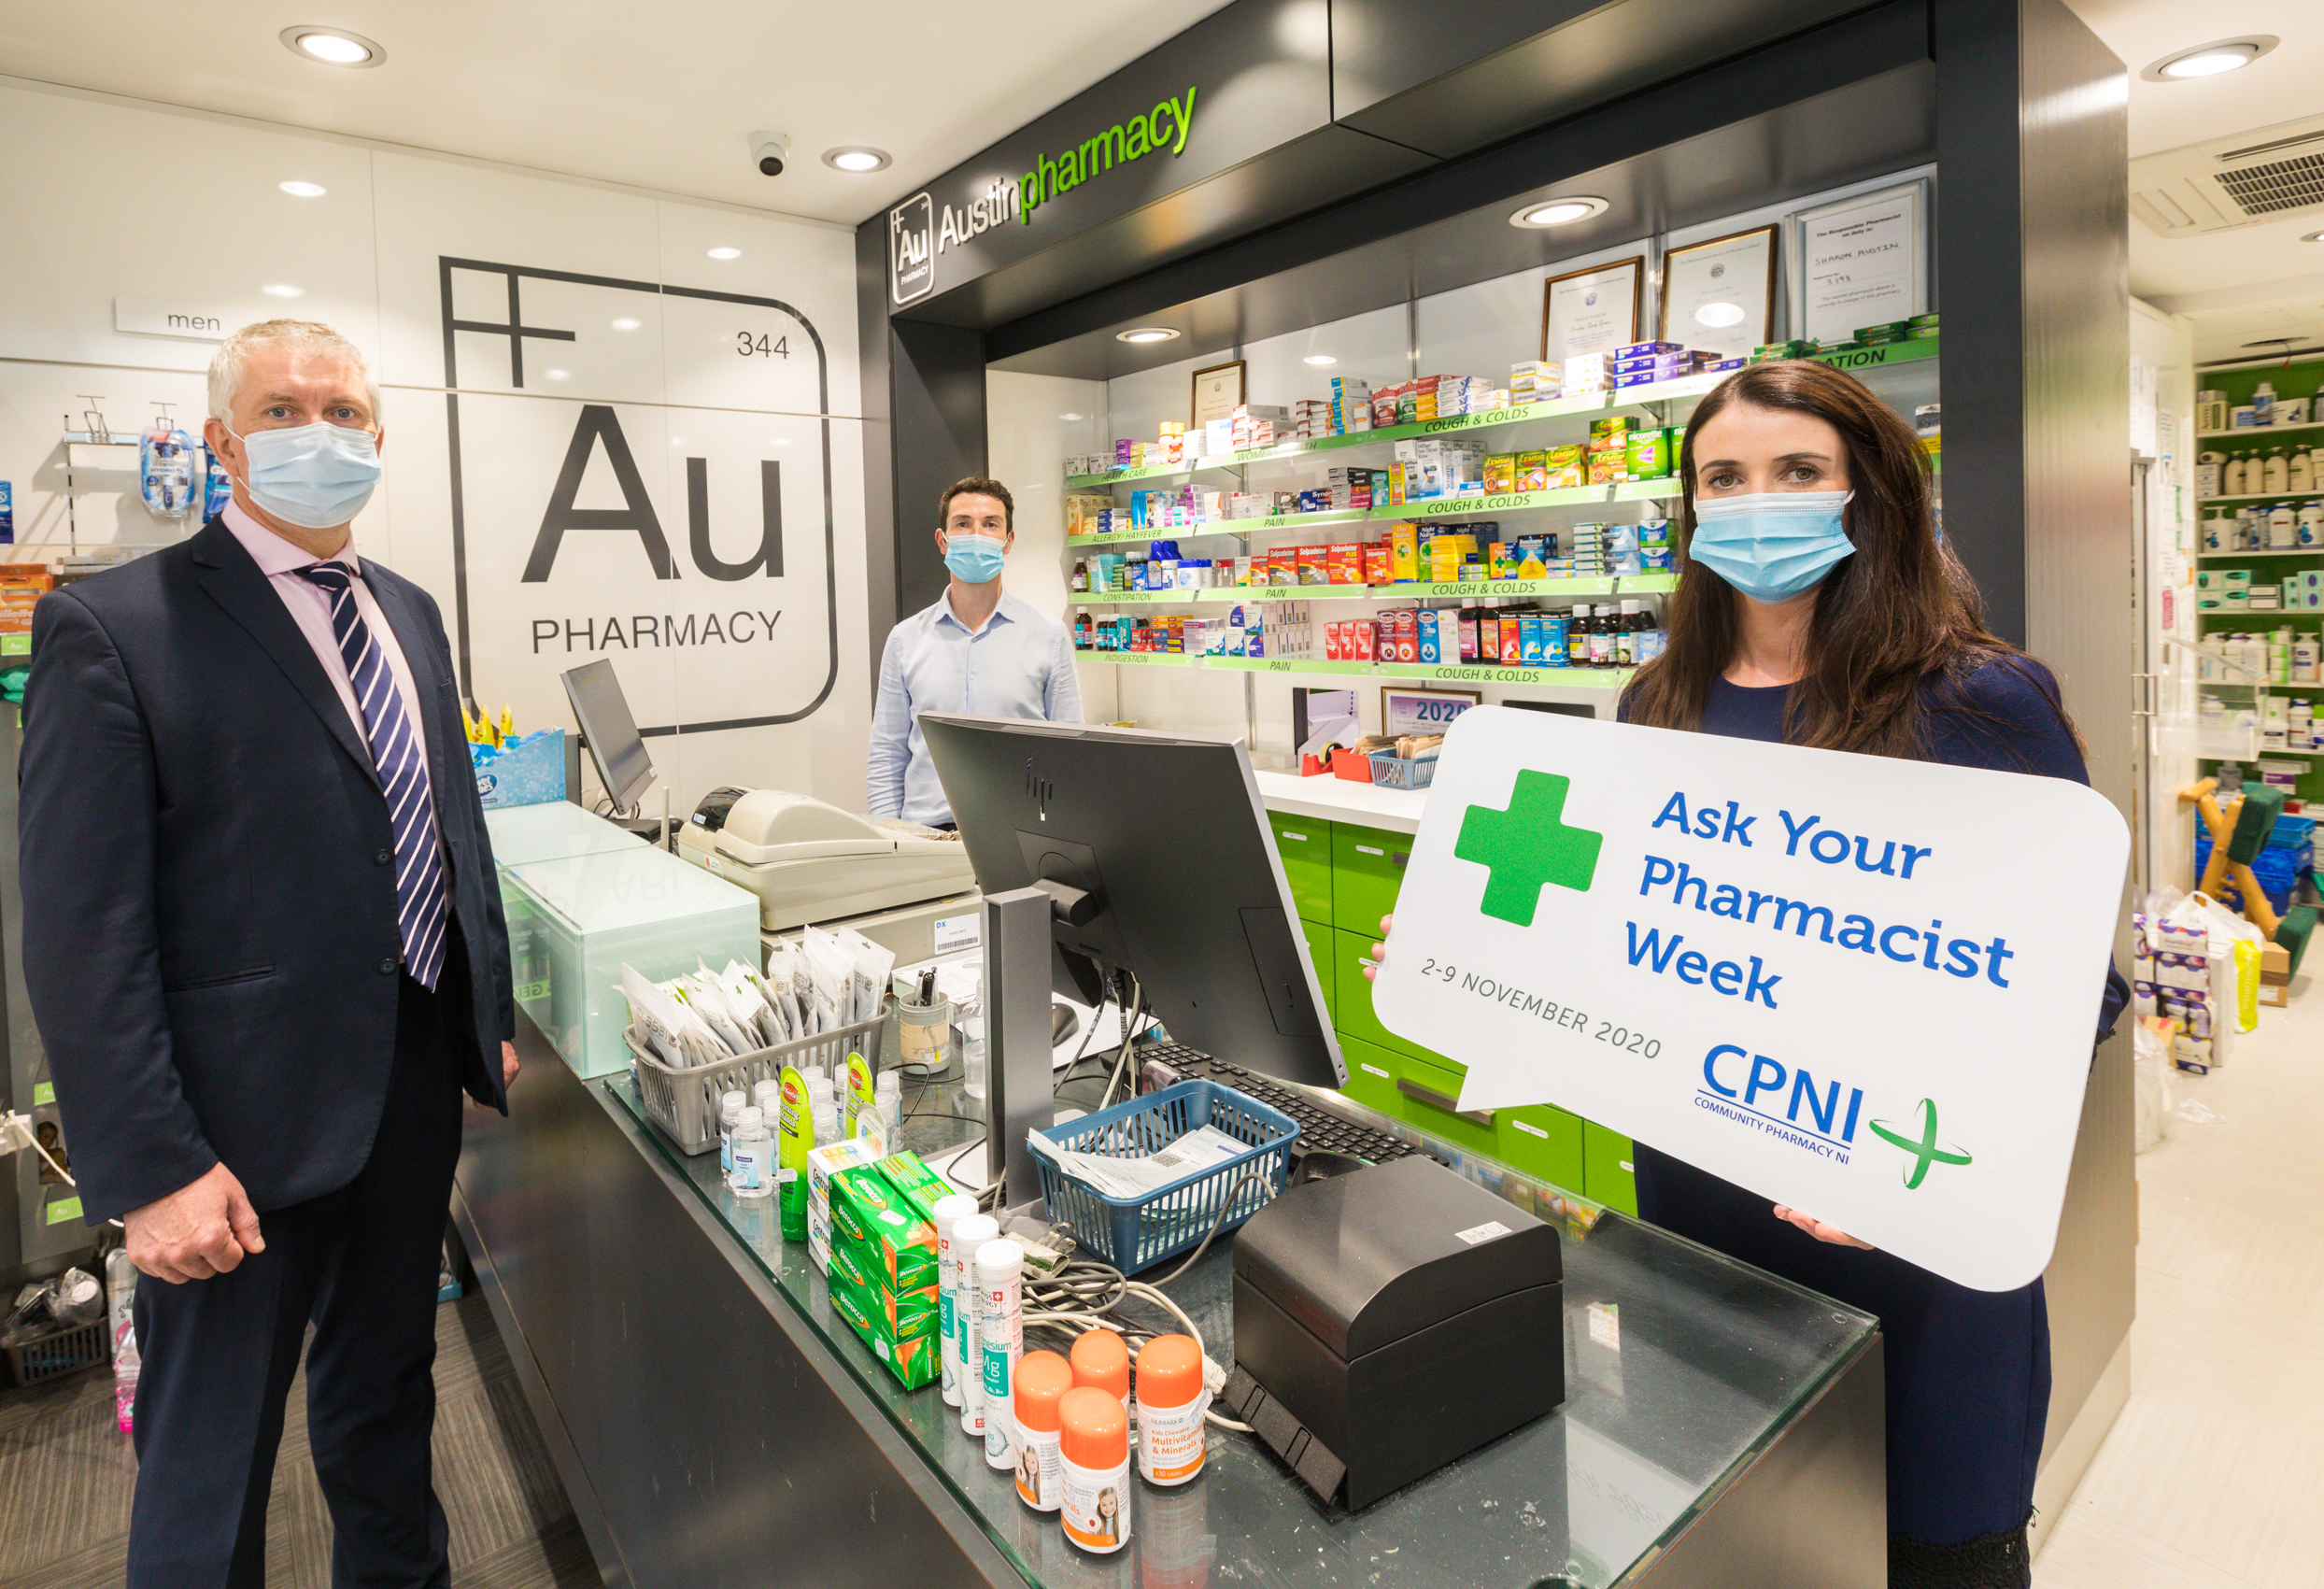 Community pharmacy services keeping accessible healthcare at the heart of communities